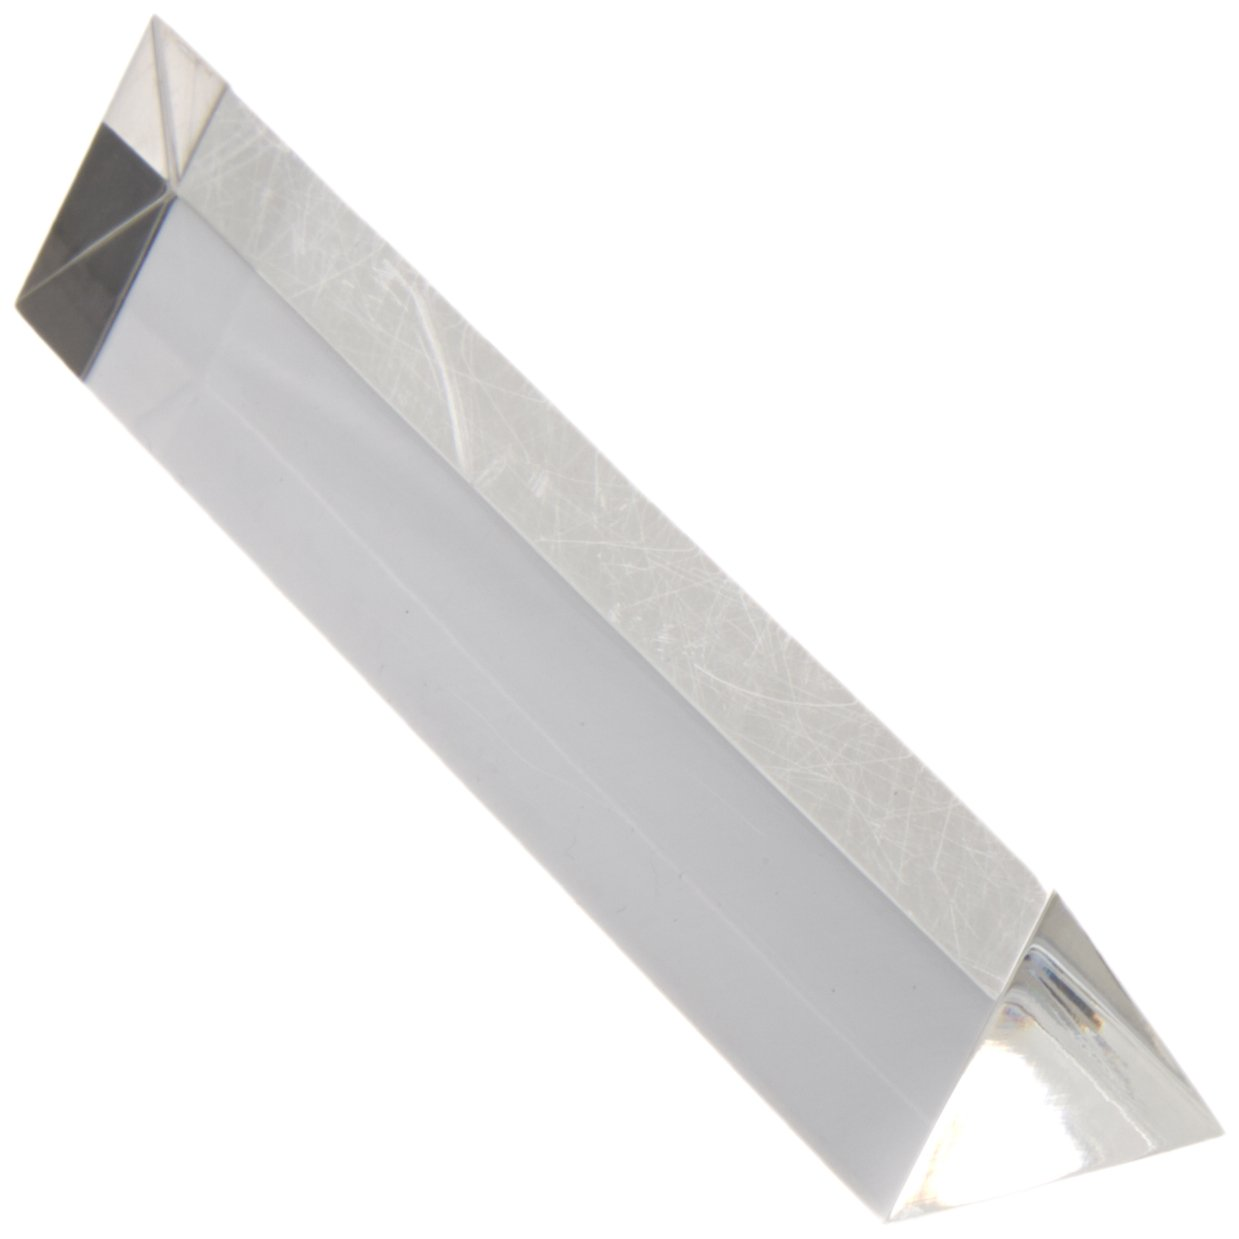 United Scientific PAE150 Acrylic Equilateral Prism, 150mm Length, 25mm Face Size